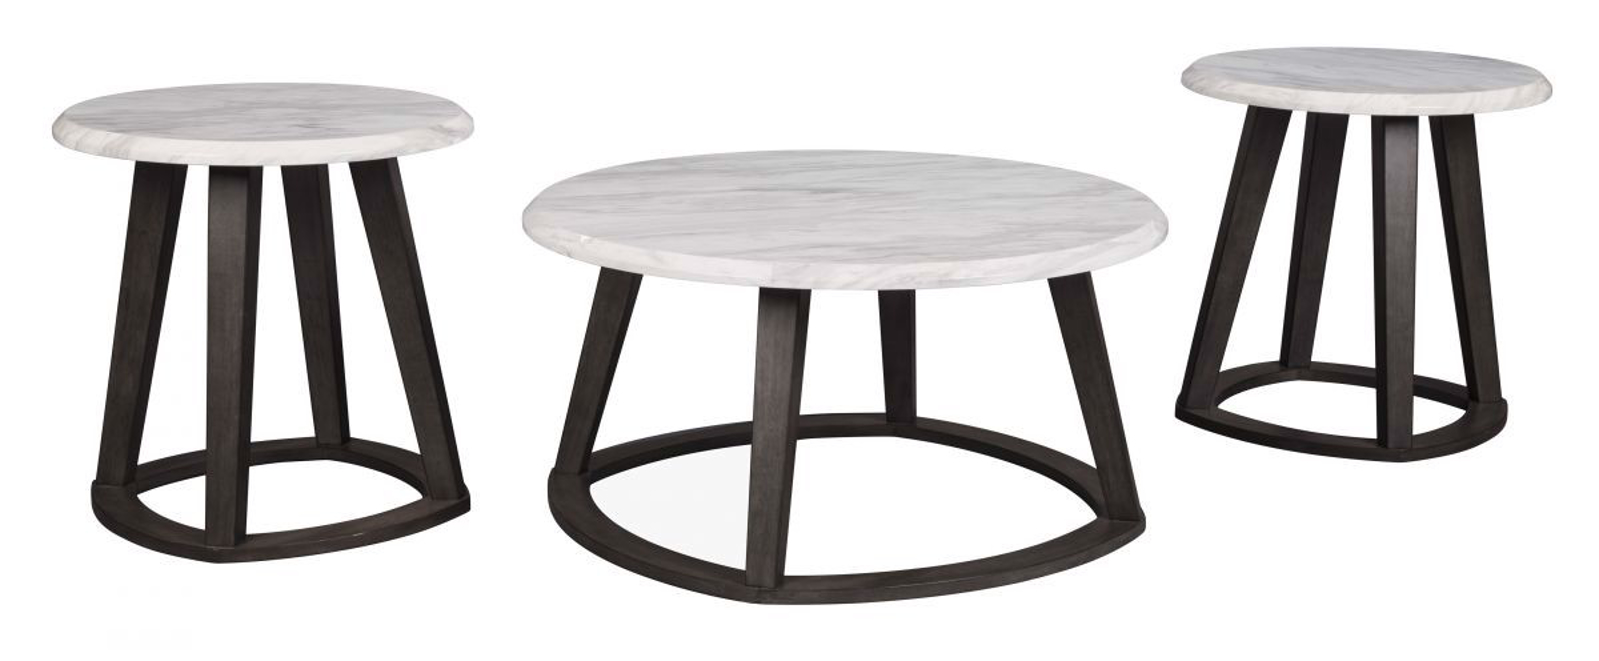 Picture of Luvoni 3 Piece Table Set